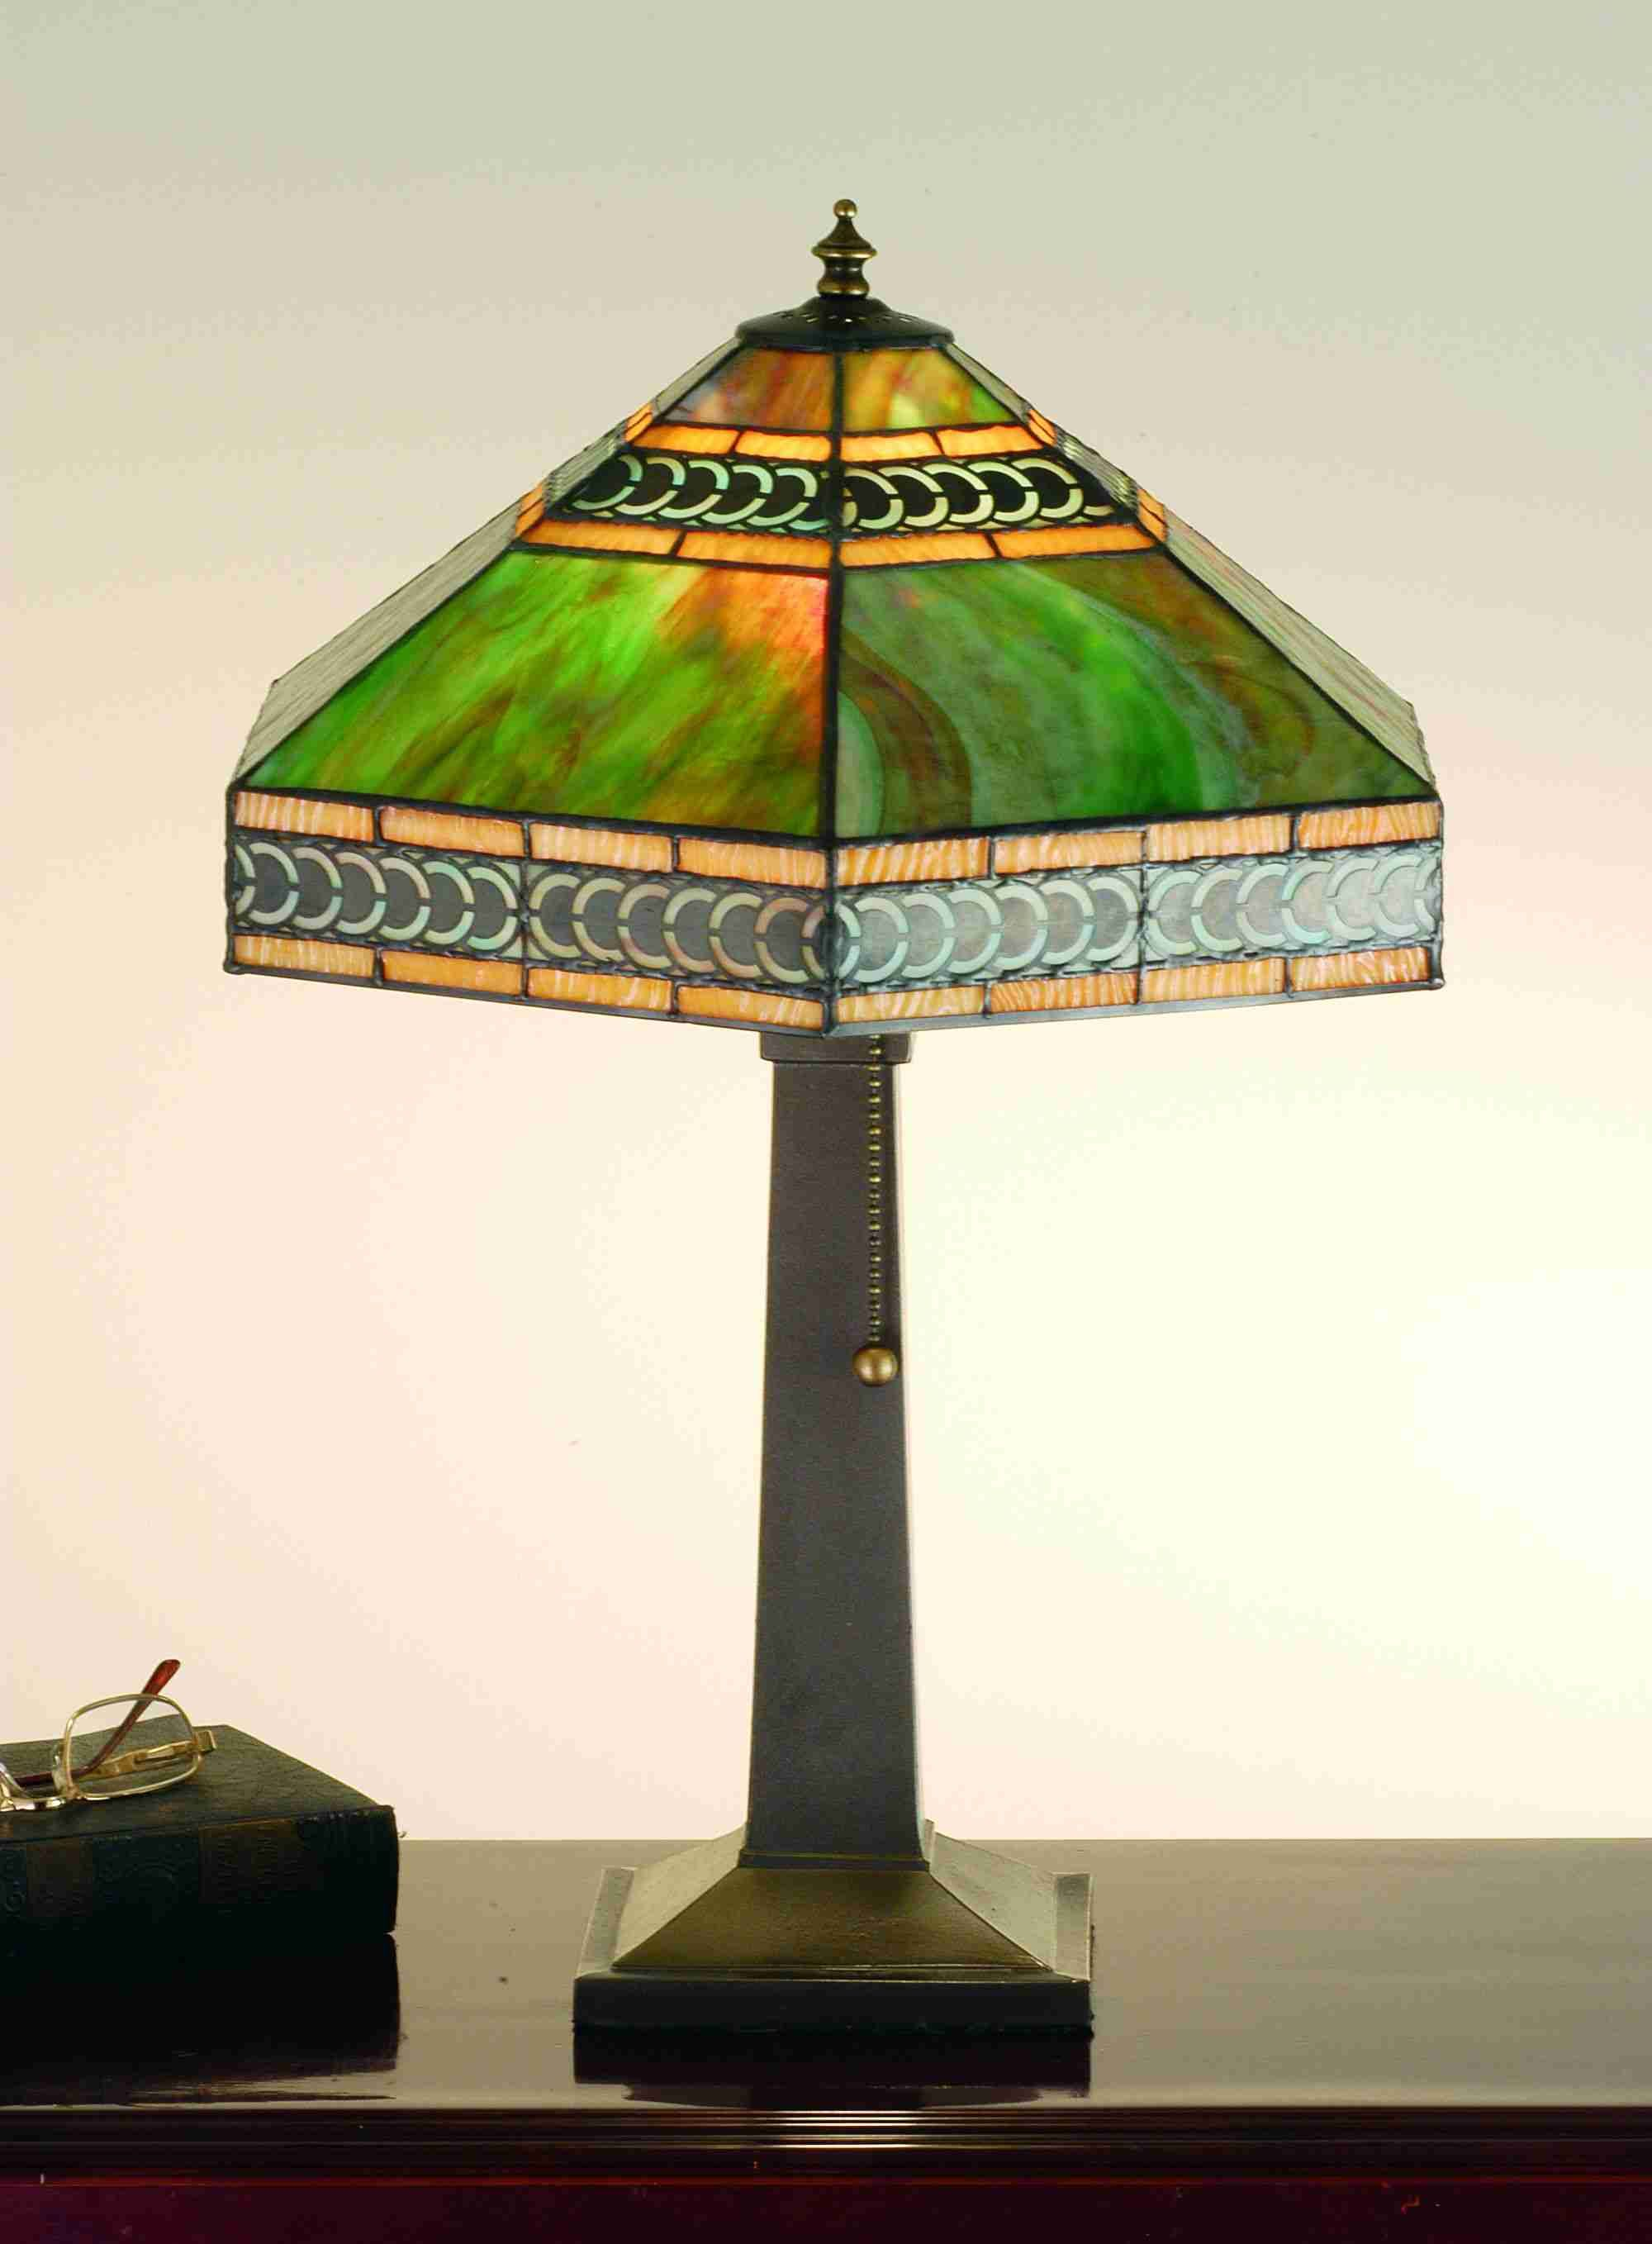 Stained glass lamp shades for floor lamps doces abobrinhas glass stained glass lamp shades for floor lamps mozeypictures